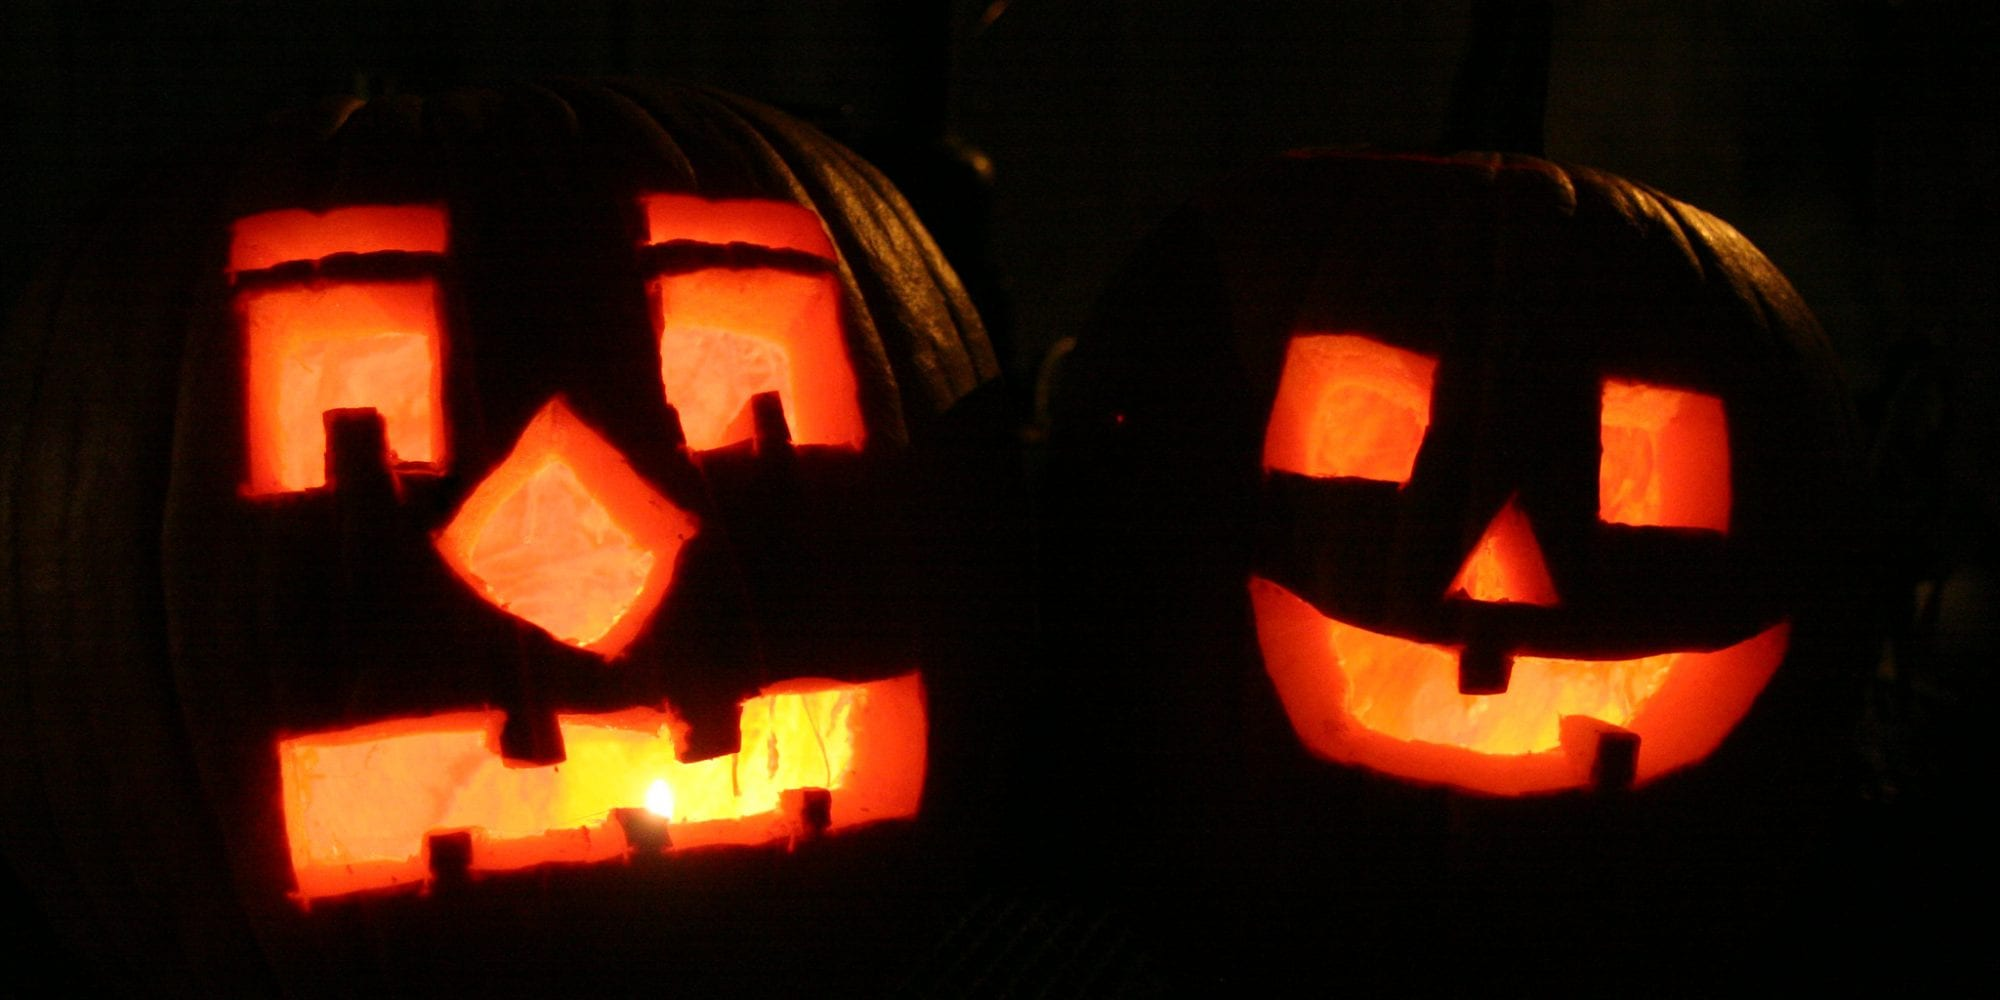 Halloween jack-o-lanterns. Photo by Tom Lampe.